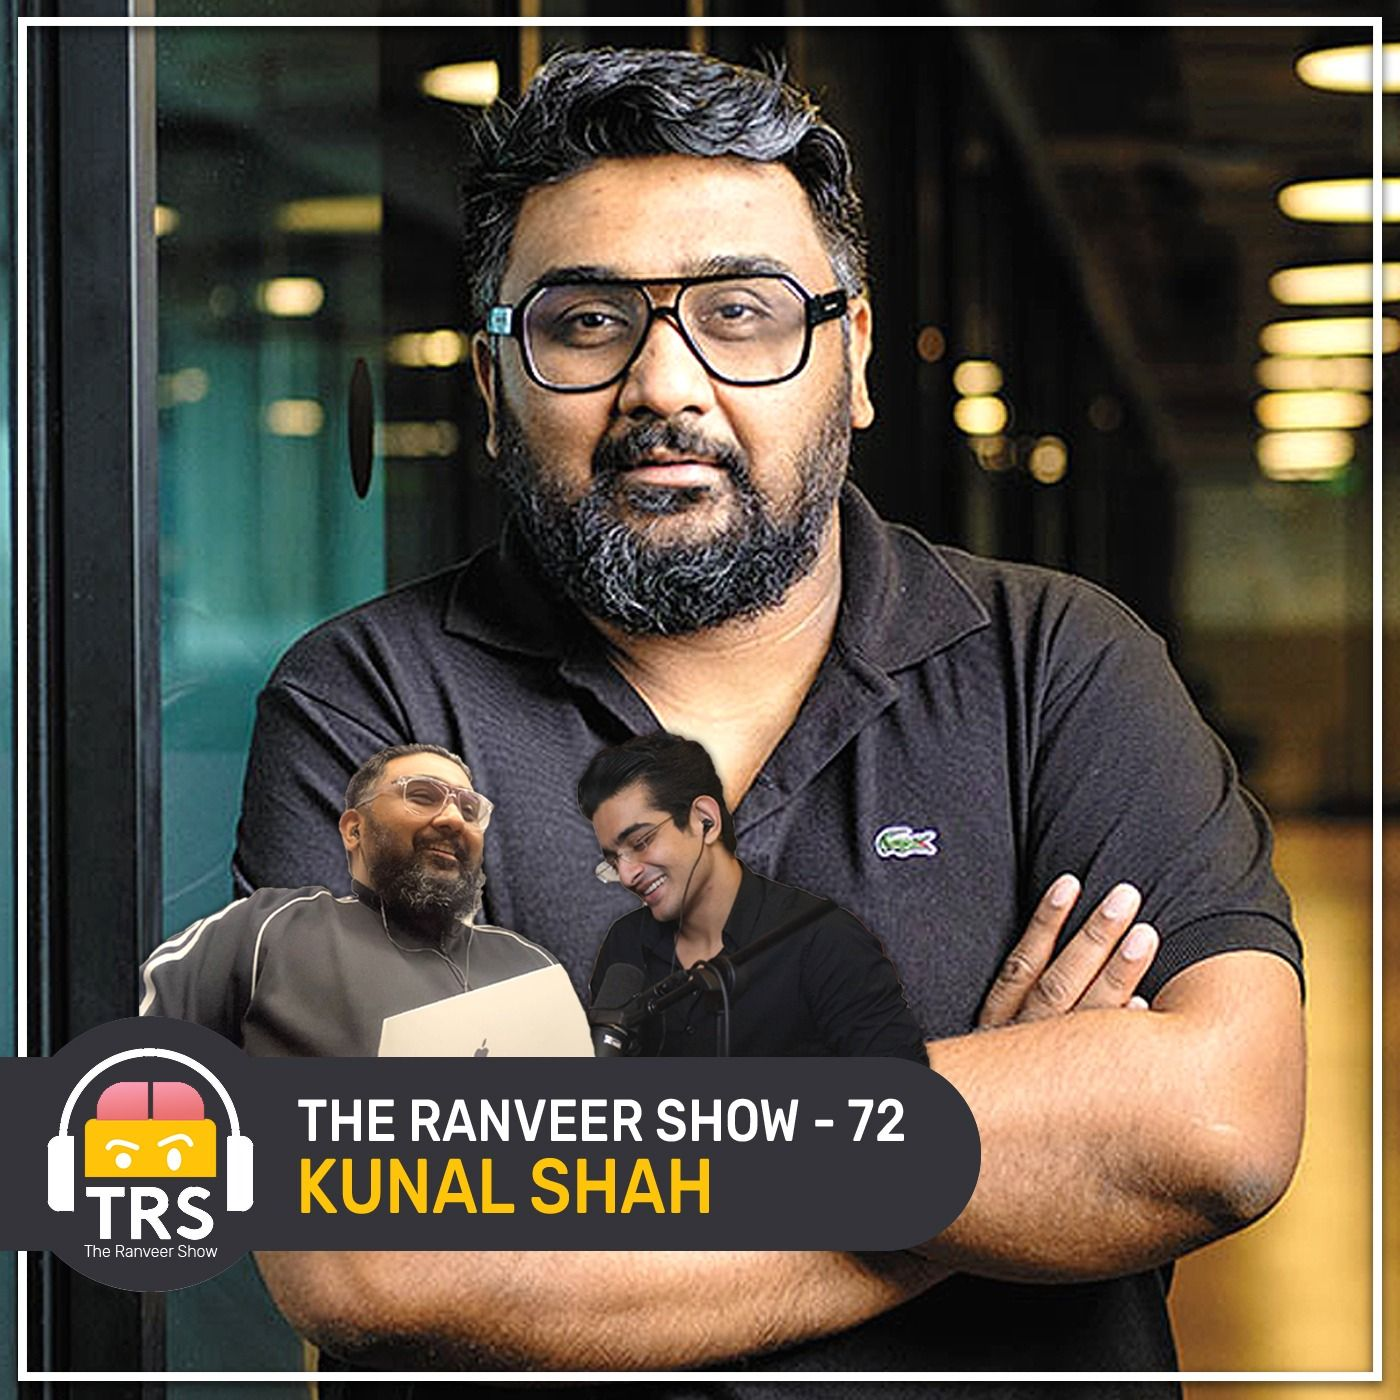 Kunal Shah's Powerful Tips For Wealth & Success | The Ranveer Show 72